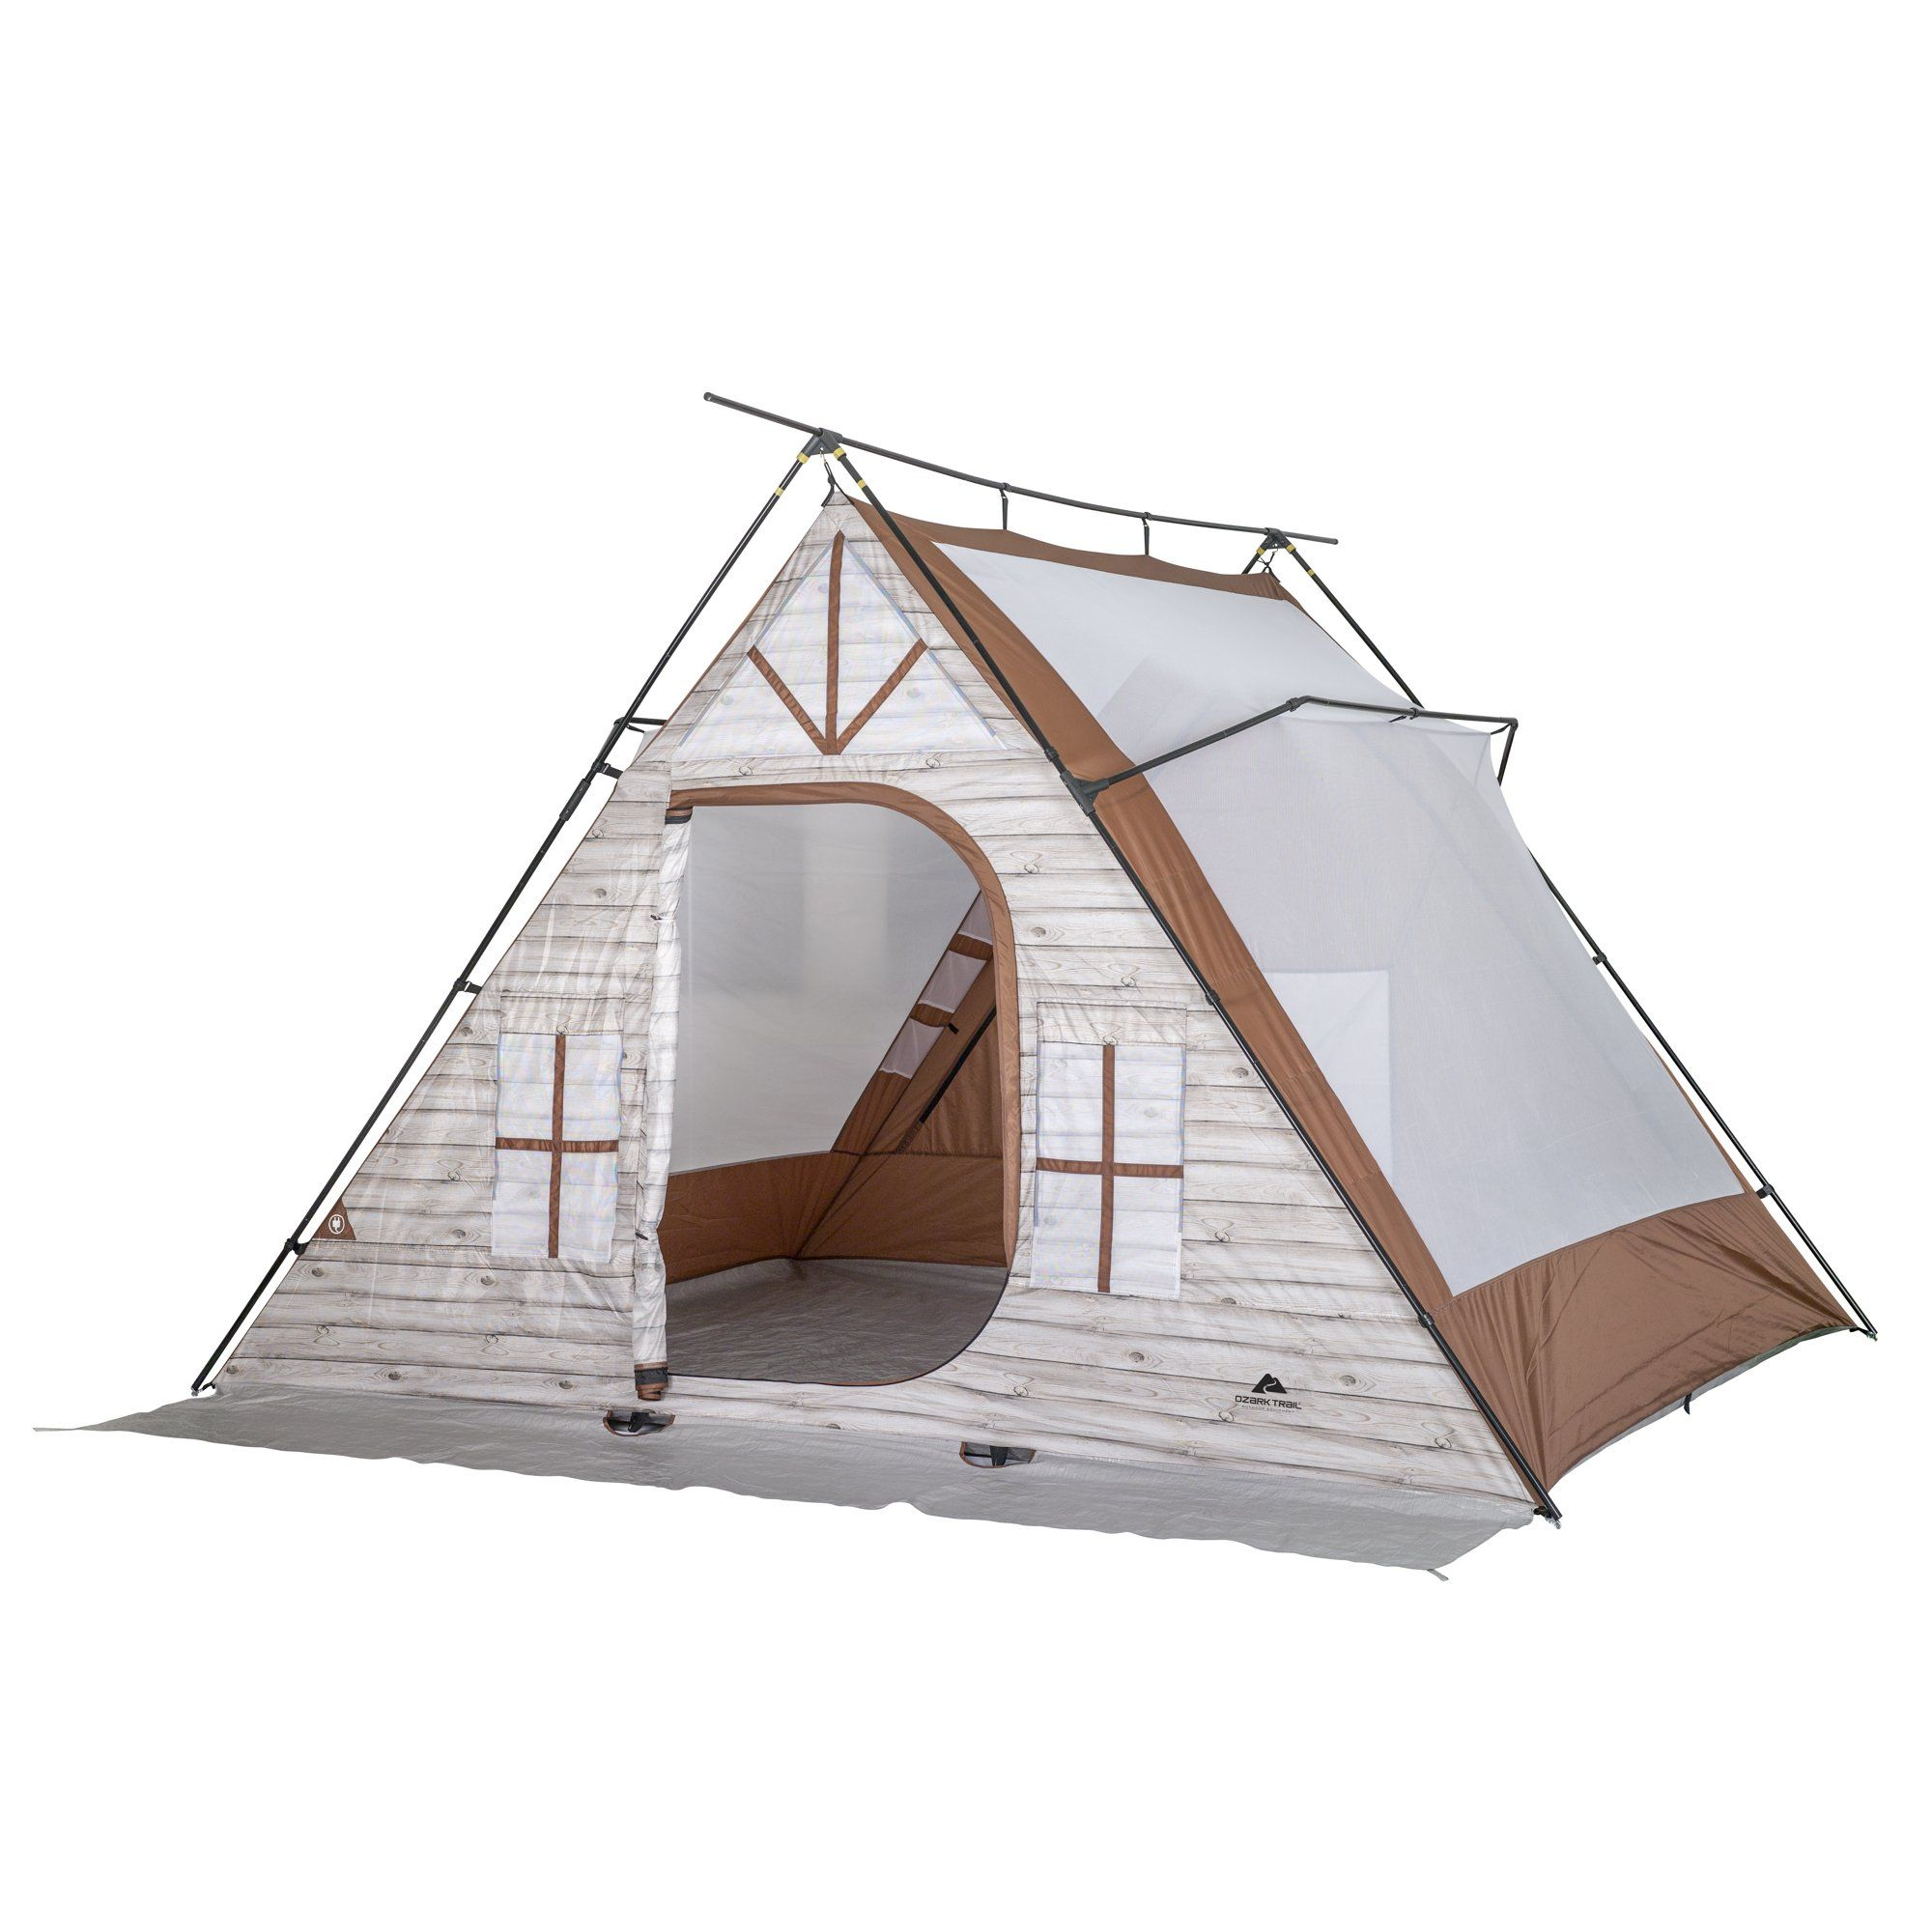 Ozark Trail 8 Person A Frame Outdoor Cabin Tent Walmart Com In 2020 Cabin Tent A Frame Tent Tent